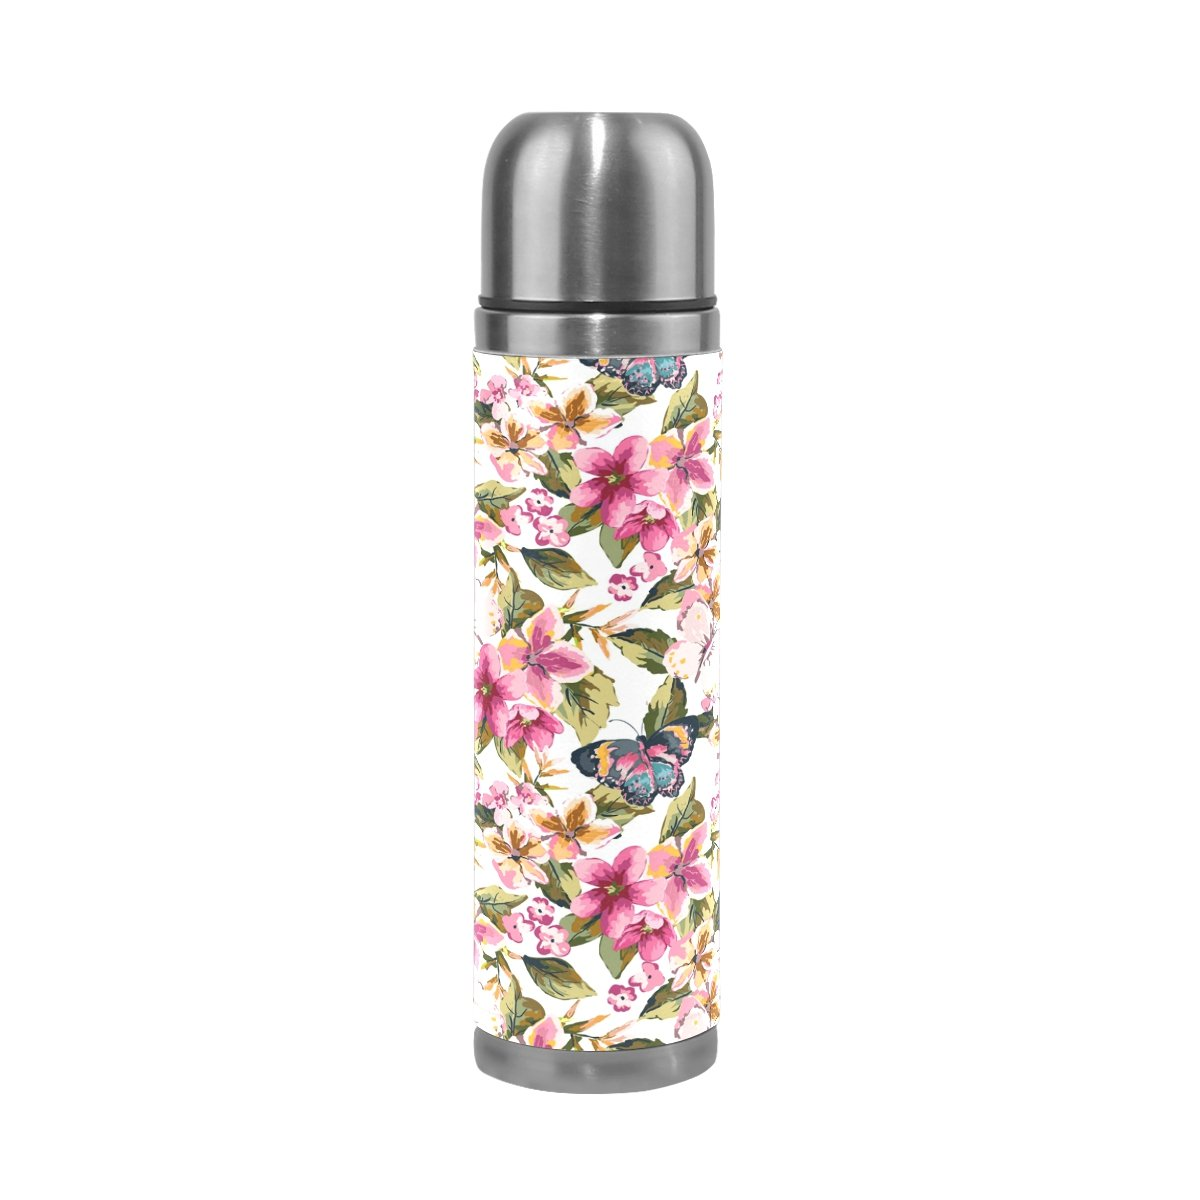 COOSUN Butterfly With Floral Pattern Stainless Steel Flasks Water Bottle Vacuum Insulated Cup Leak Proof Double Vacuum Bottle, PU Leather Travel Thermal Mug,17 oz